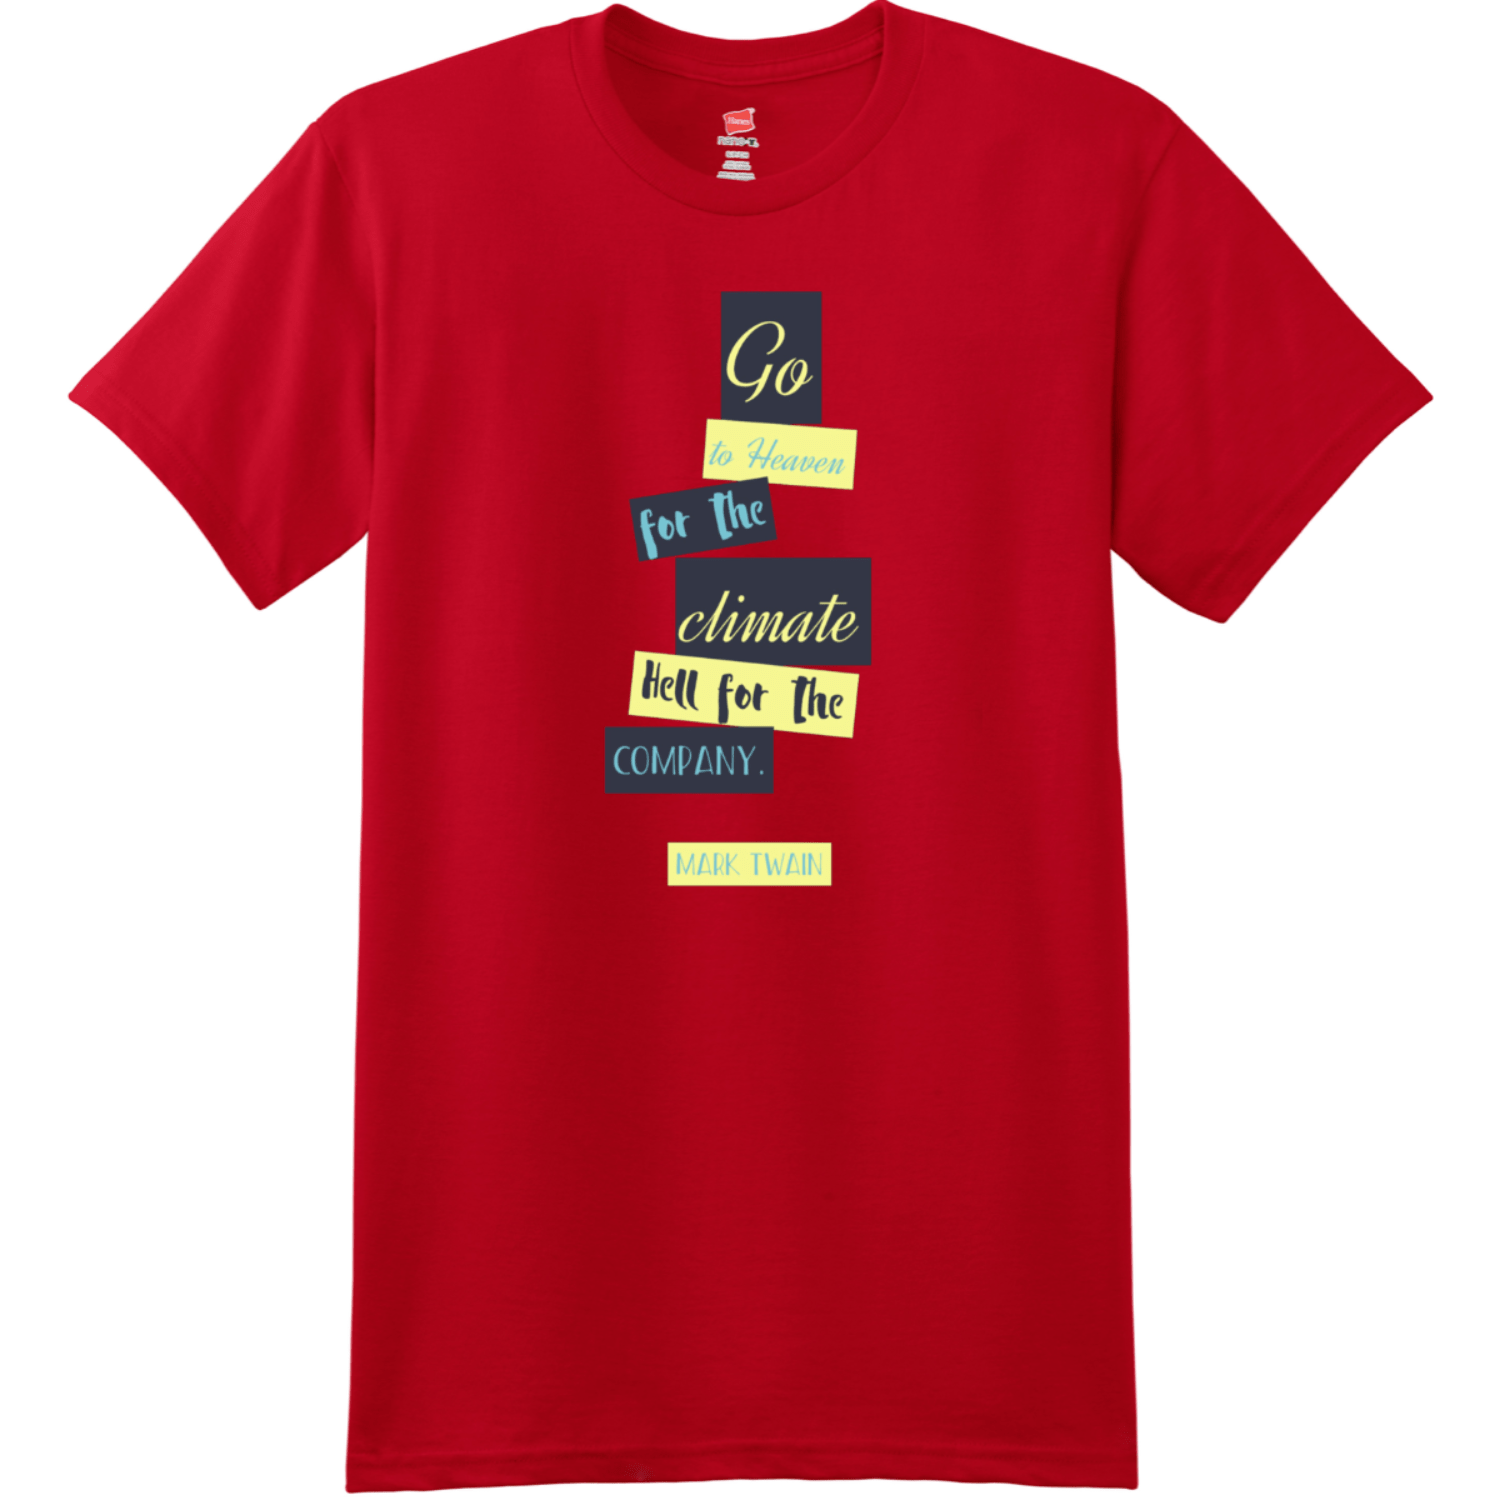 Mark Twain Funny Quote  Deep Red Hanes Nano 4980 Ringspun Cotton T Shirt